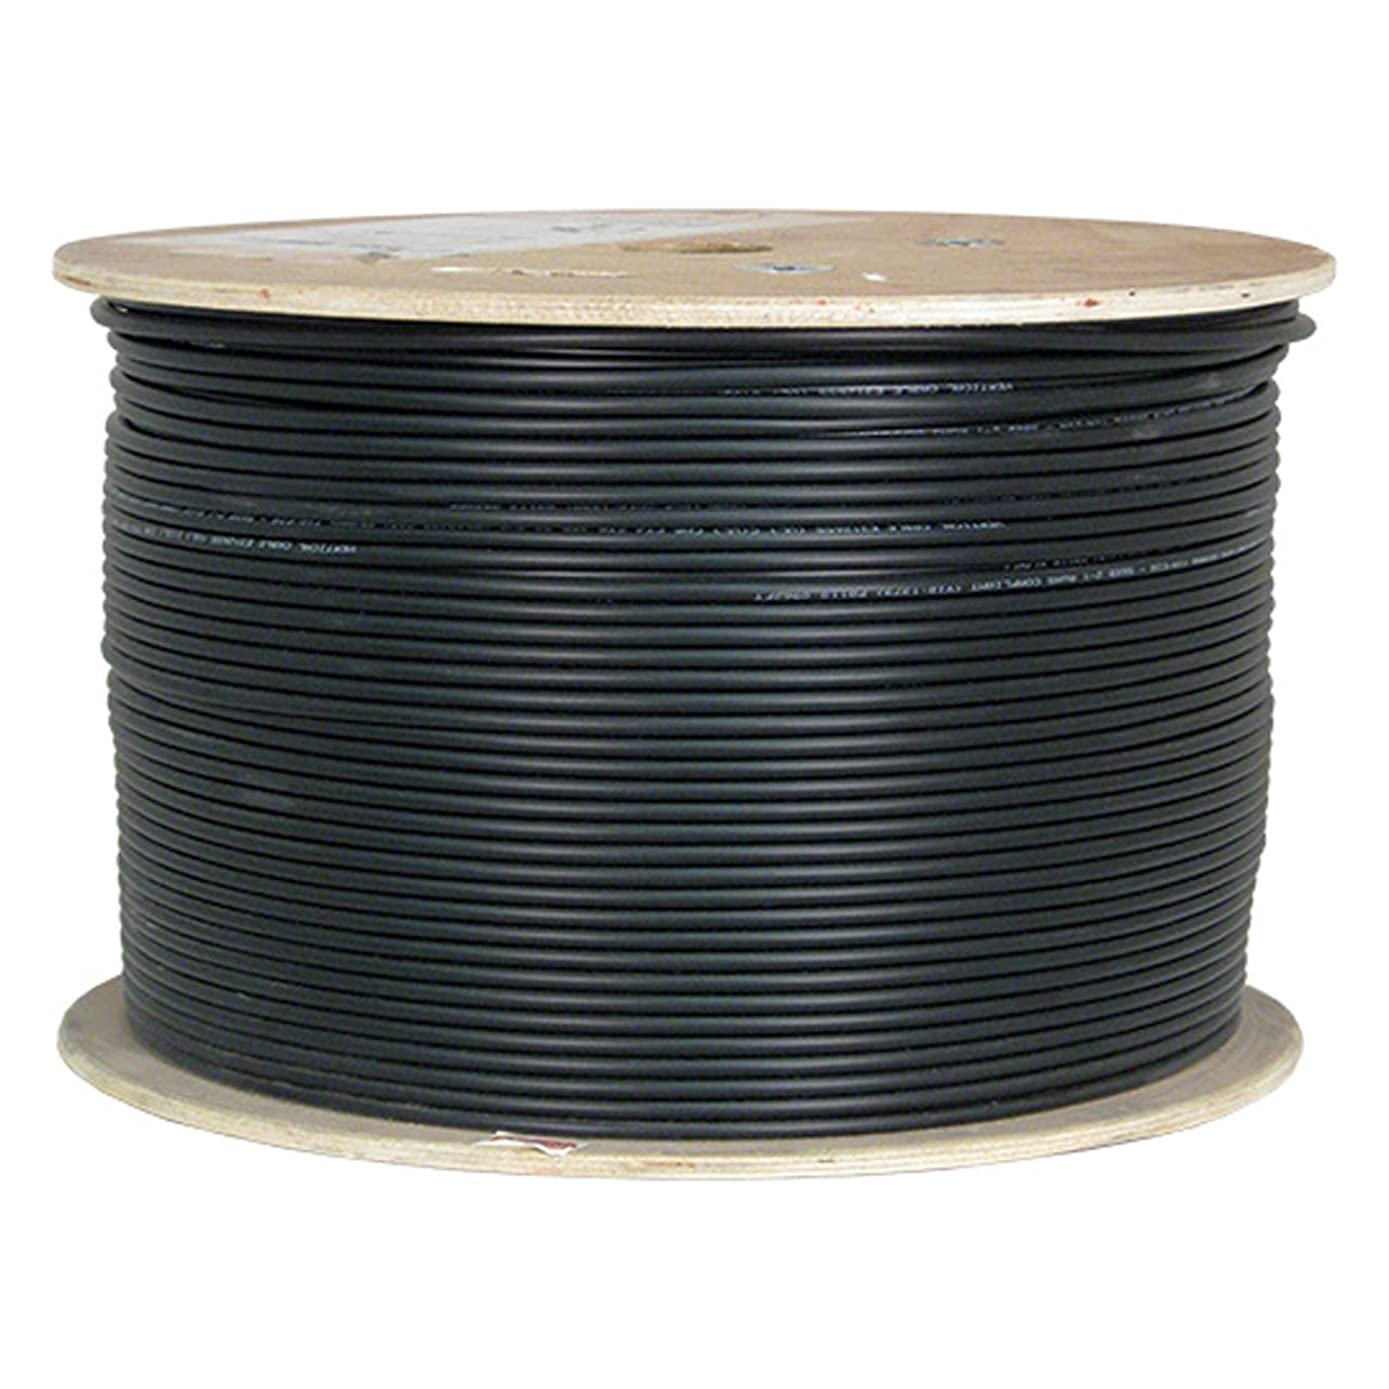 Vertical Cable Cat6, Shielded Waterproof Tape, Direct Burial, 1000ft, Black, Bulk Ethernet Cable